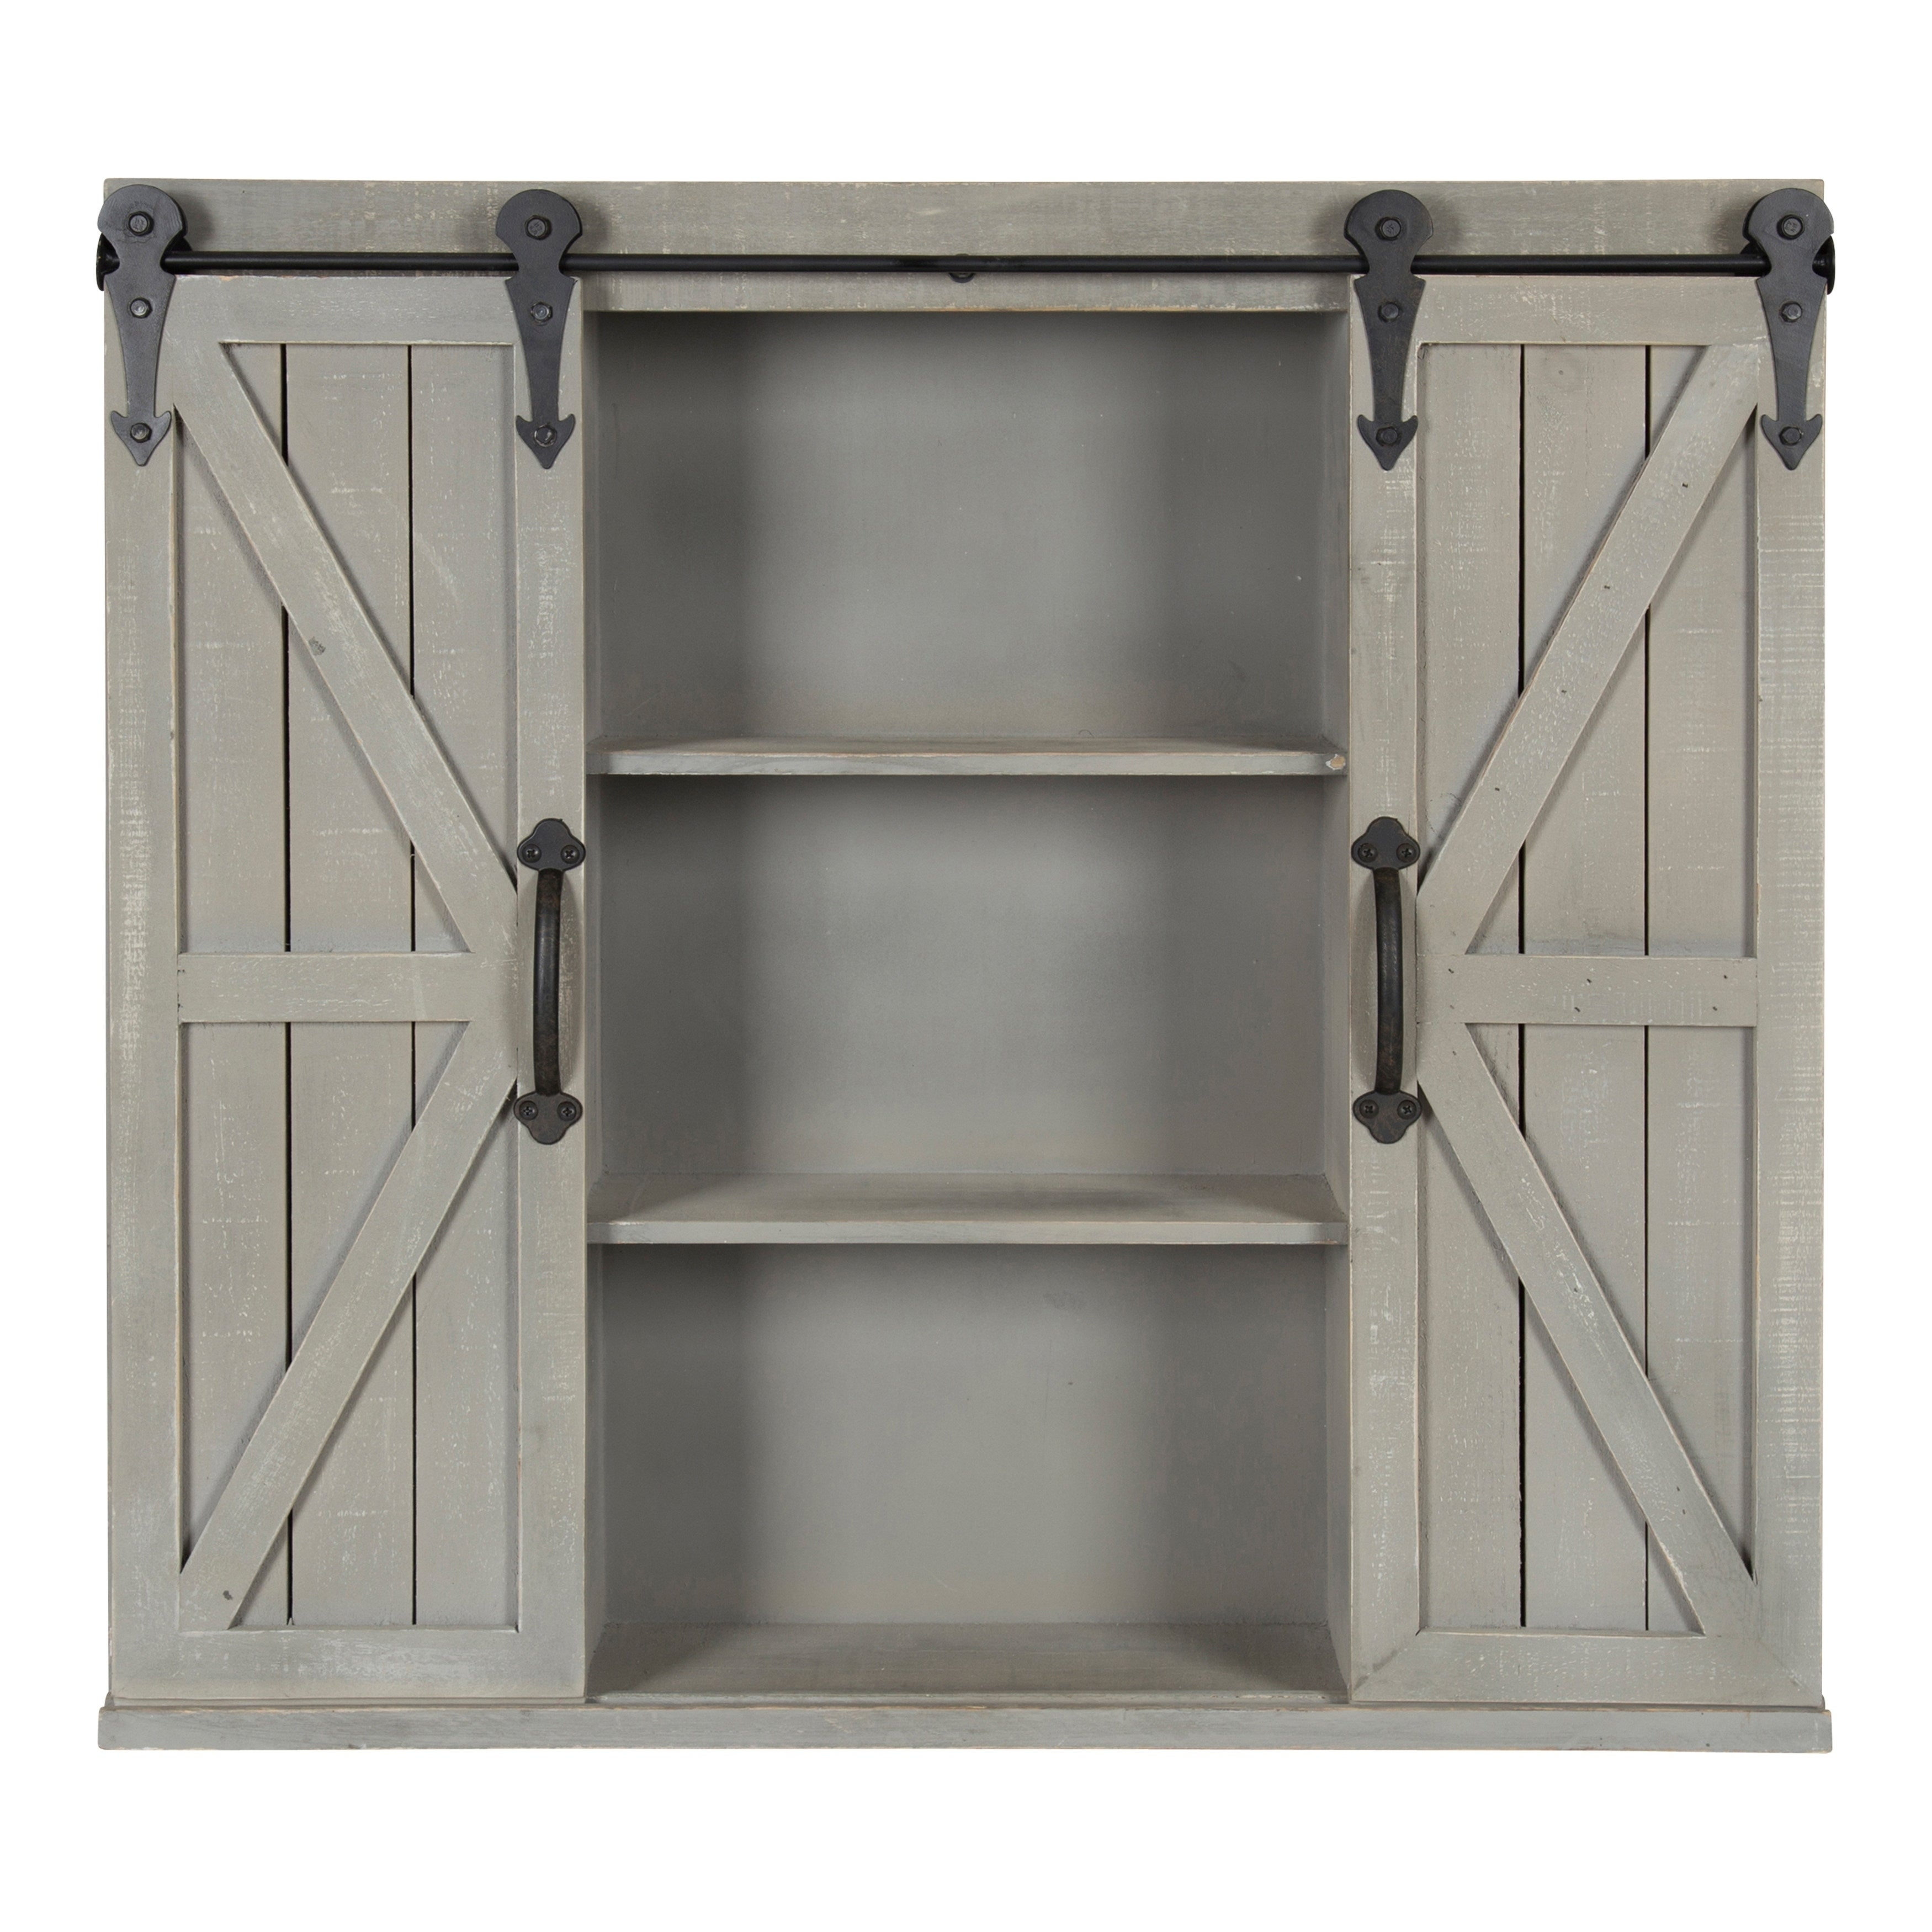 81260f8d0a55 Shop Kate and Laurel Cates Rustic Wood Wall Storage Cabinet with Barn Doors  - On Sale - Free Shipping Today - Overstock - 16838745